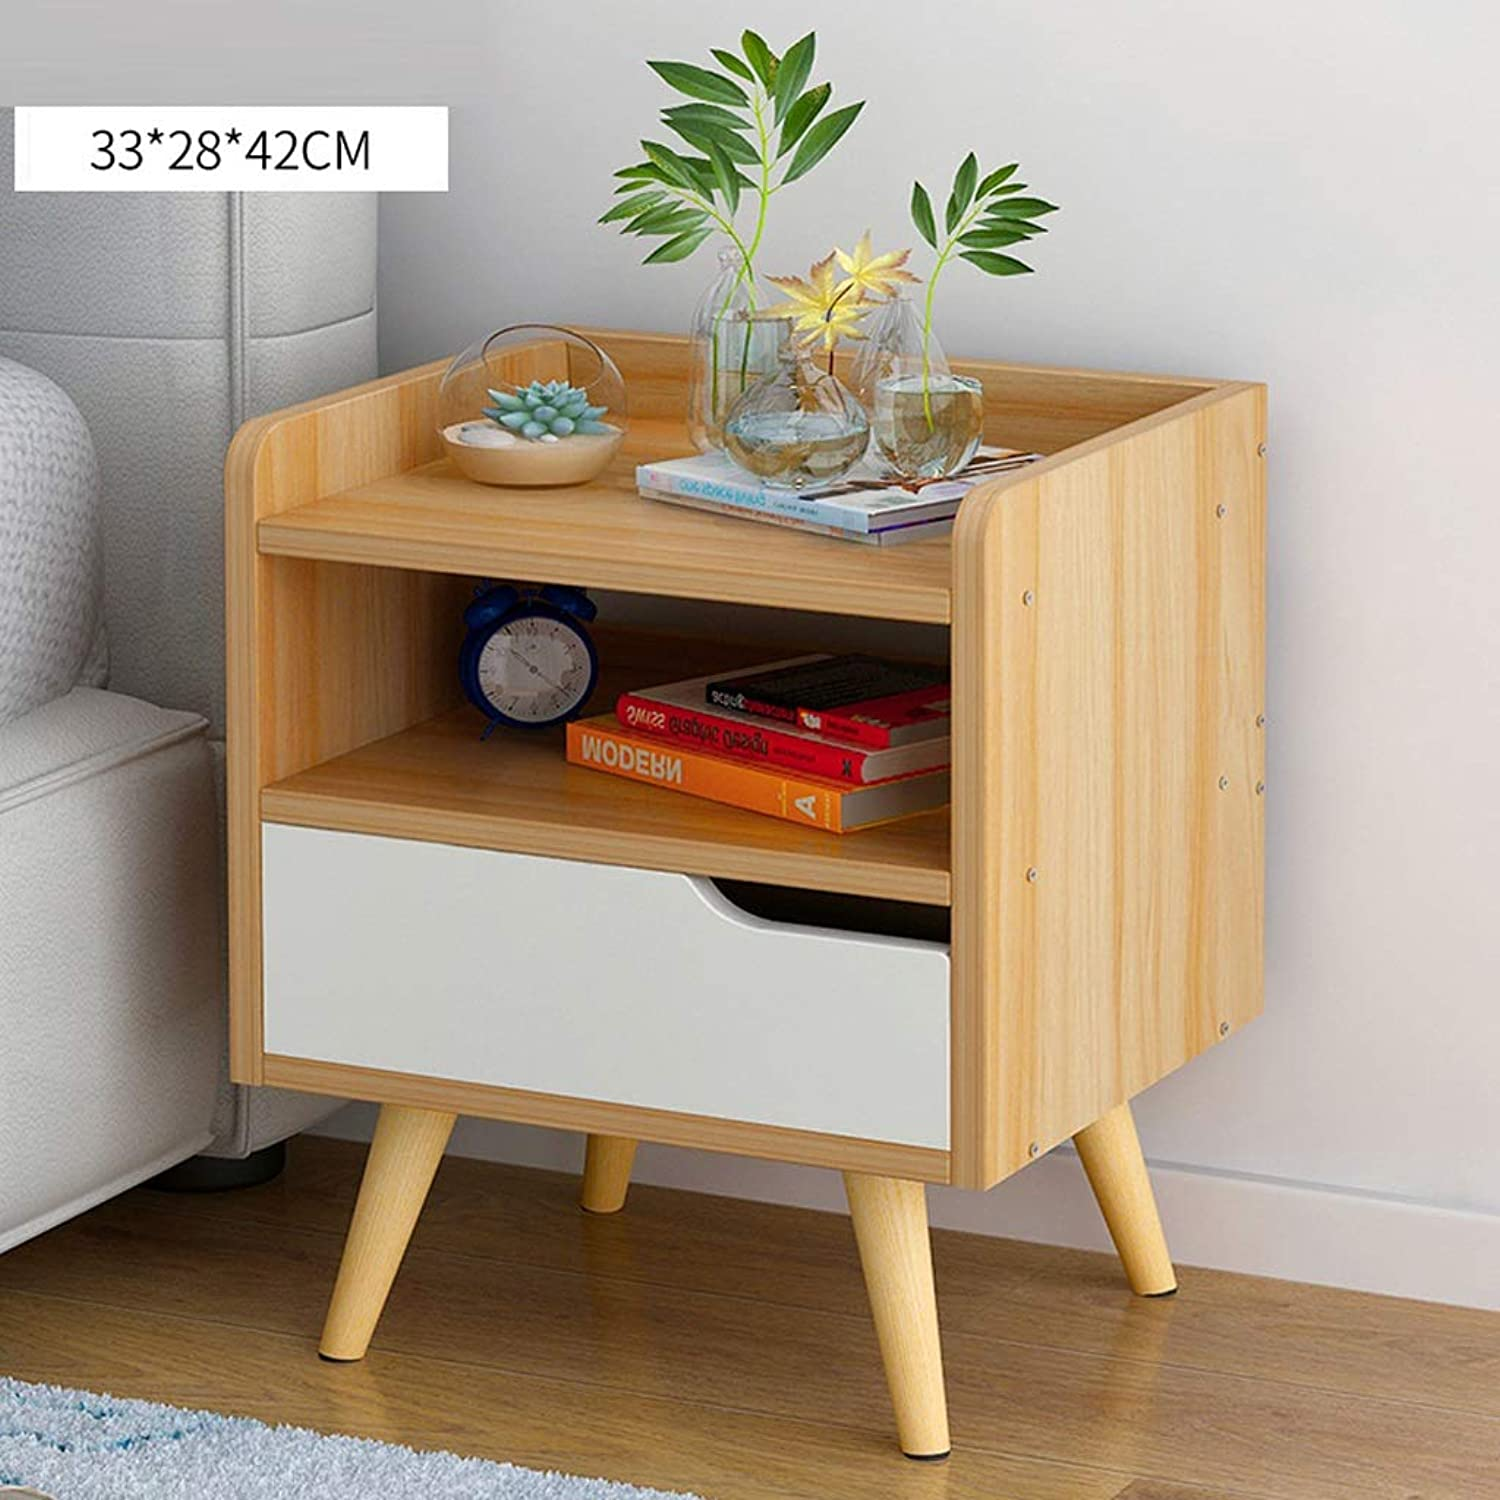 BJLWTQ Nightstand Bedside Cabinet Wood Bedside Table with Drawer Bedroom Storage Cabinet Locker Bed Small Cabinet Nightstand (color   Wood, Size   B)